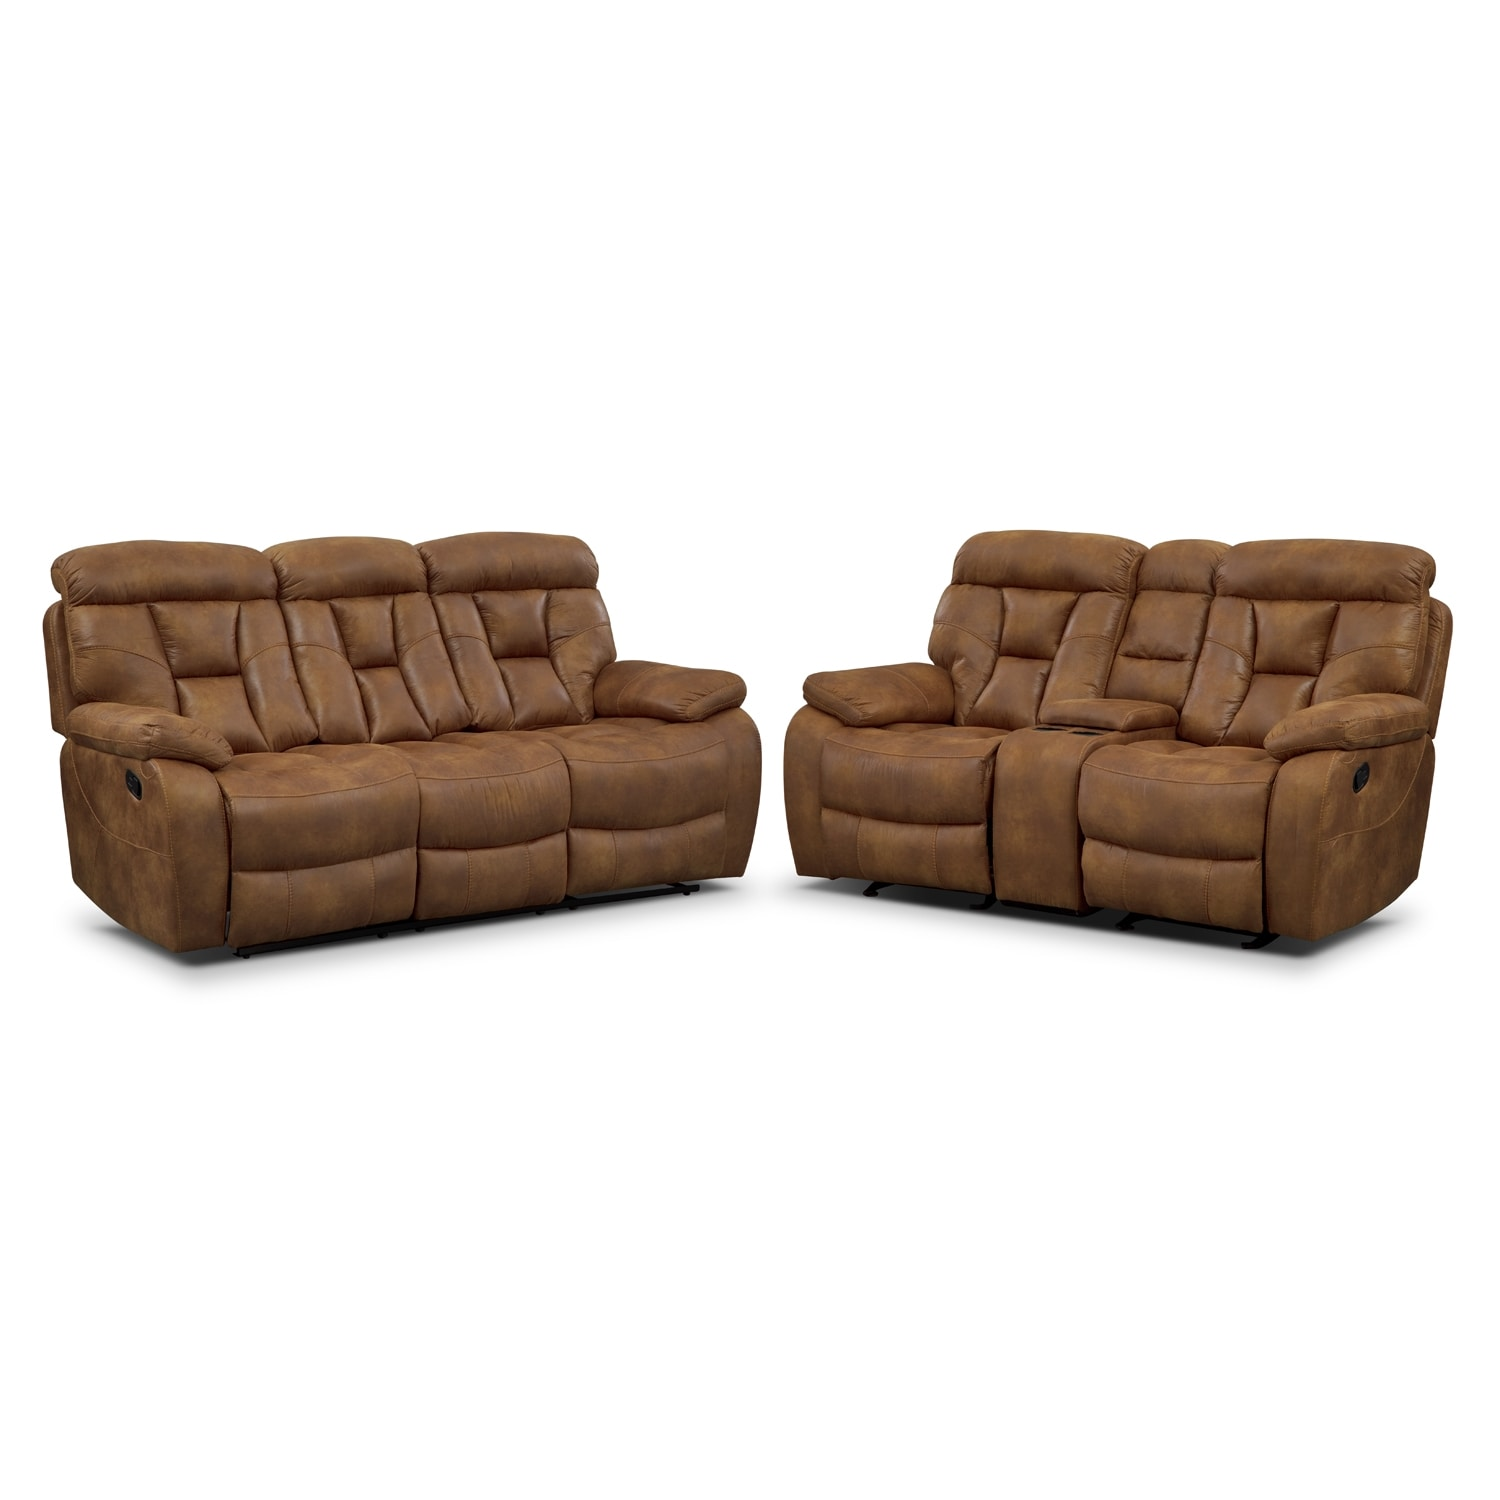 Dakota Reclining Sofa And Glider Loveseat Set Almond Value City Furniture